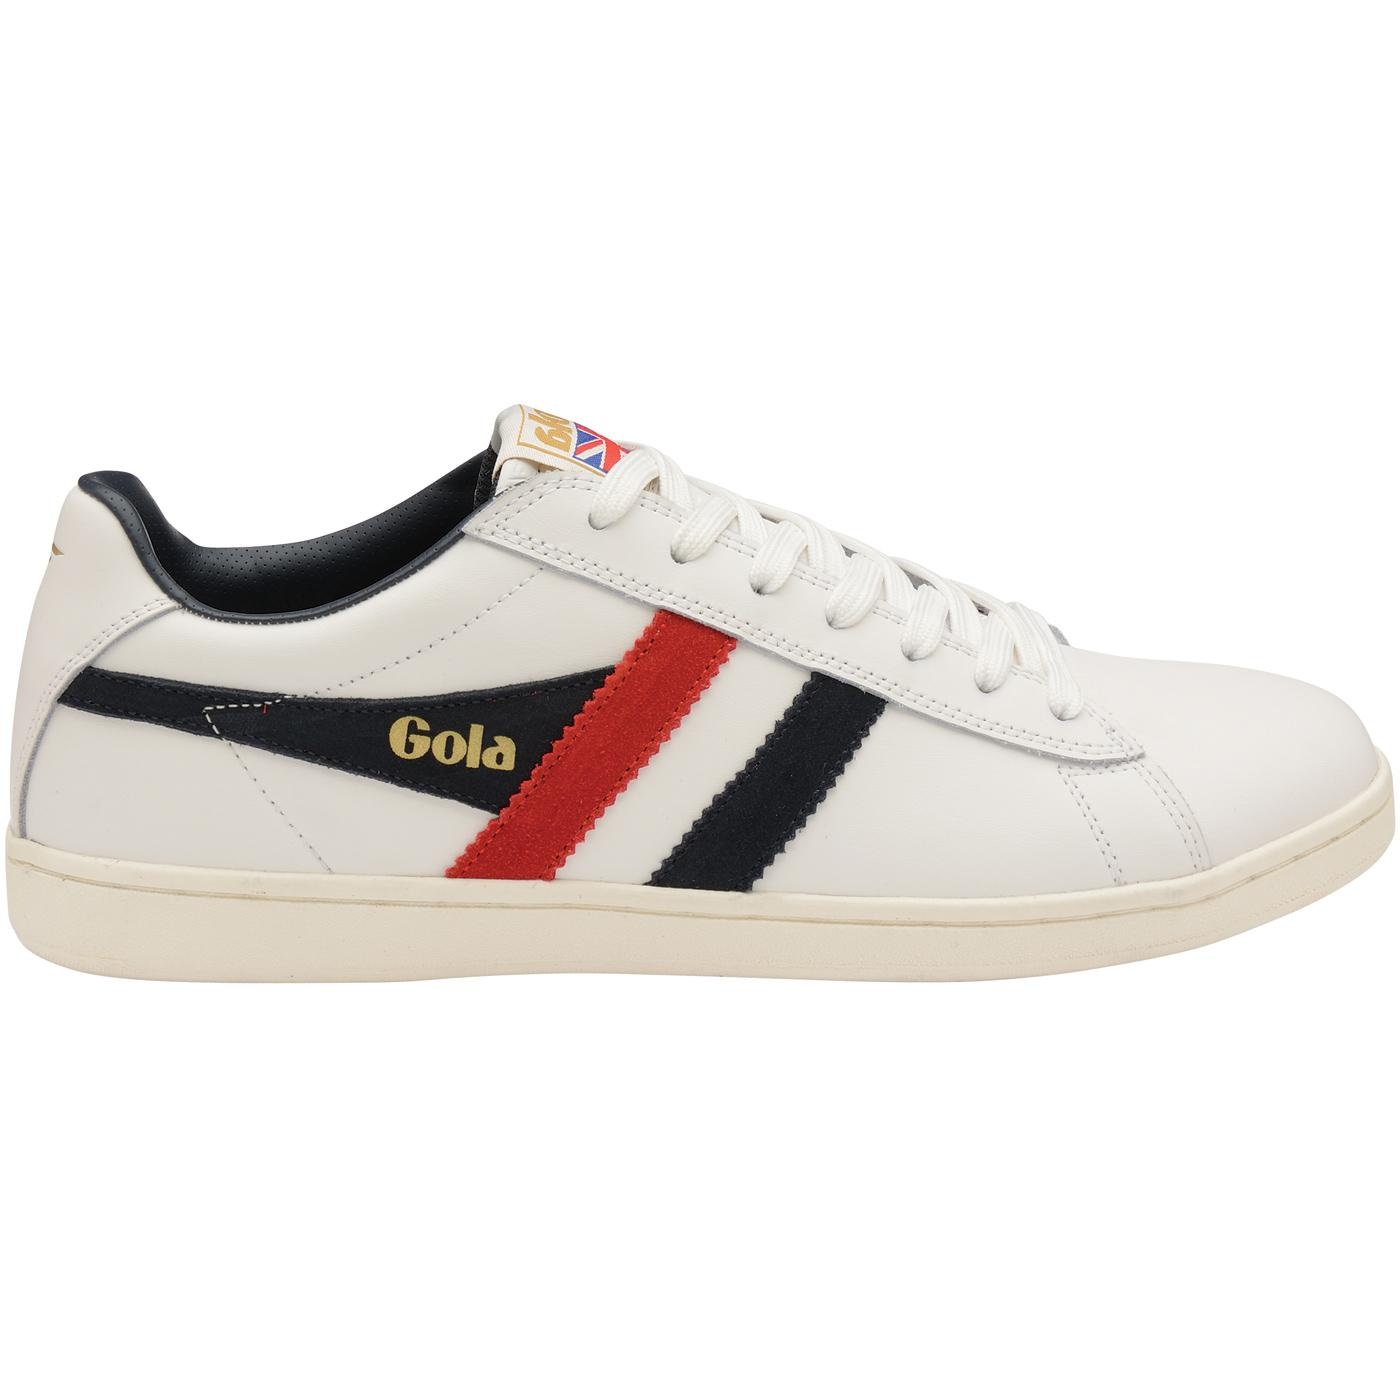 Equipe GOLA Retro Archive Leather Trainers (W/N/R)